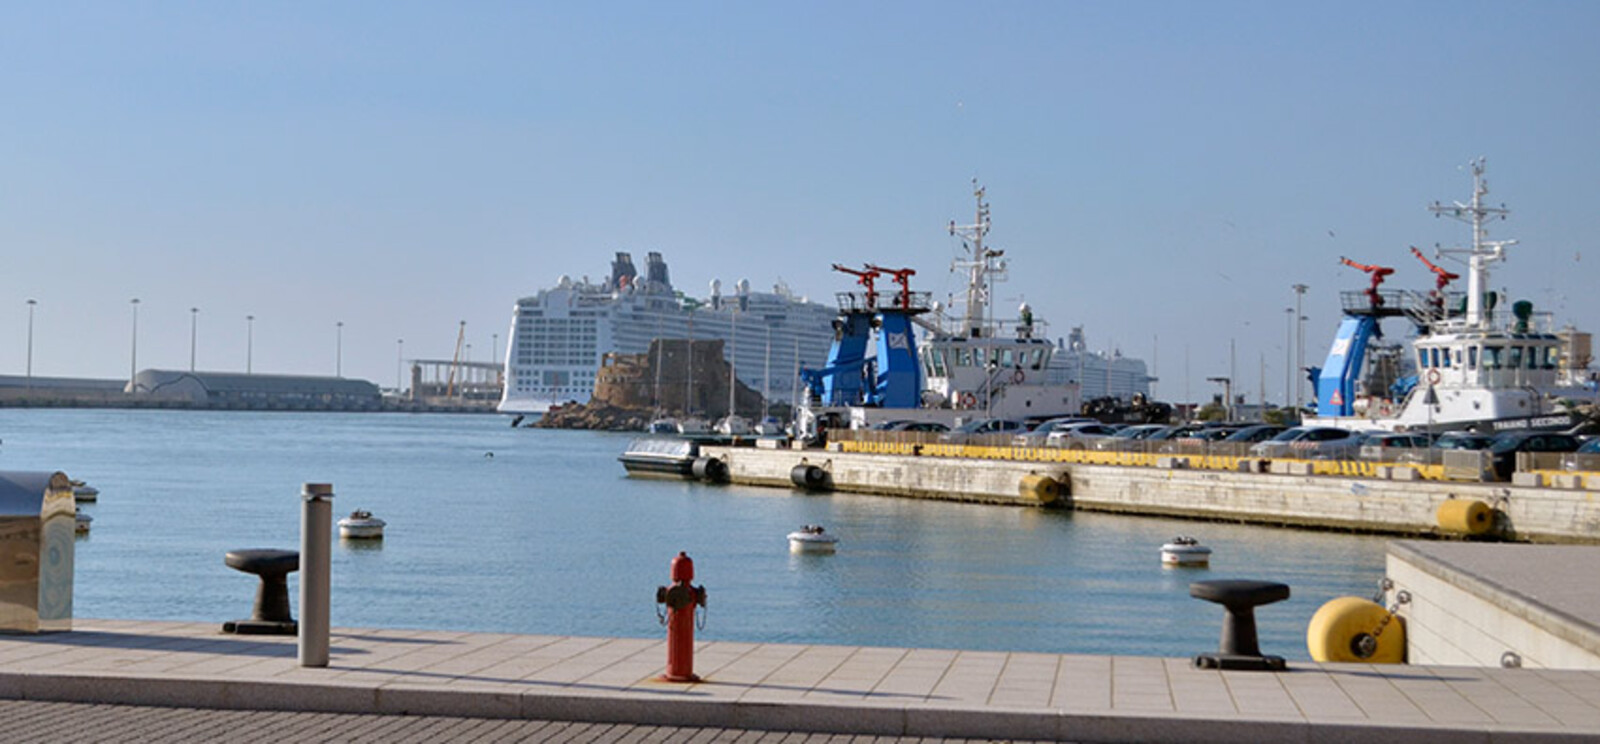 How to get from civitavecchia port to rome all the - Civitavecchia port to fiumicino airport ...